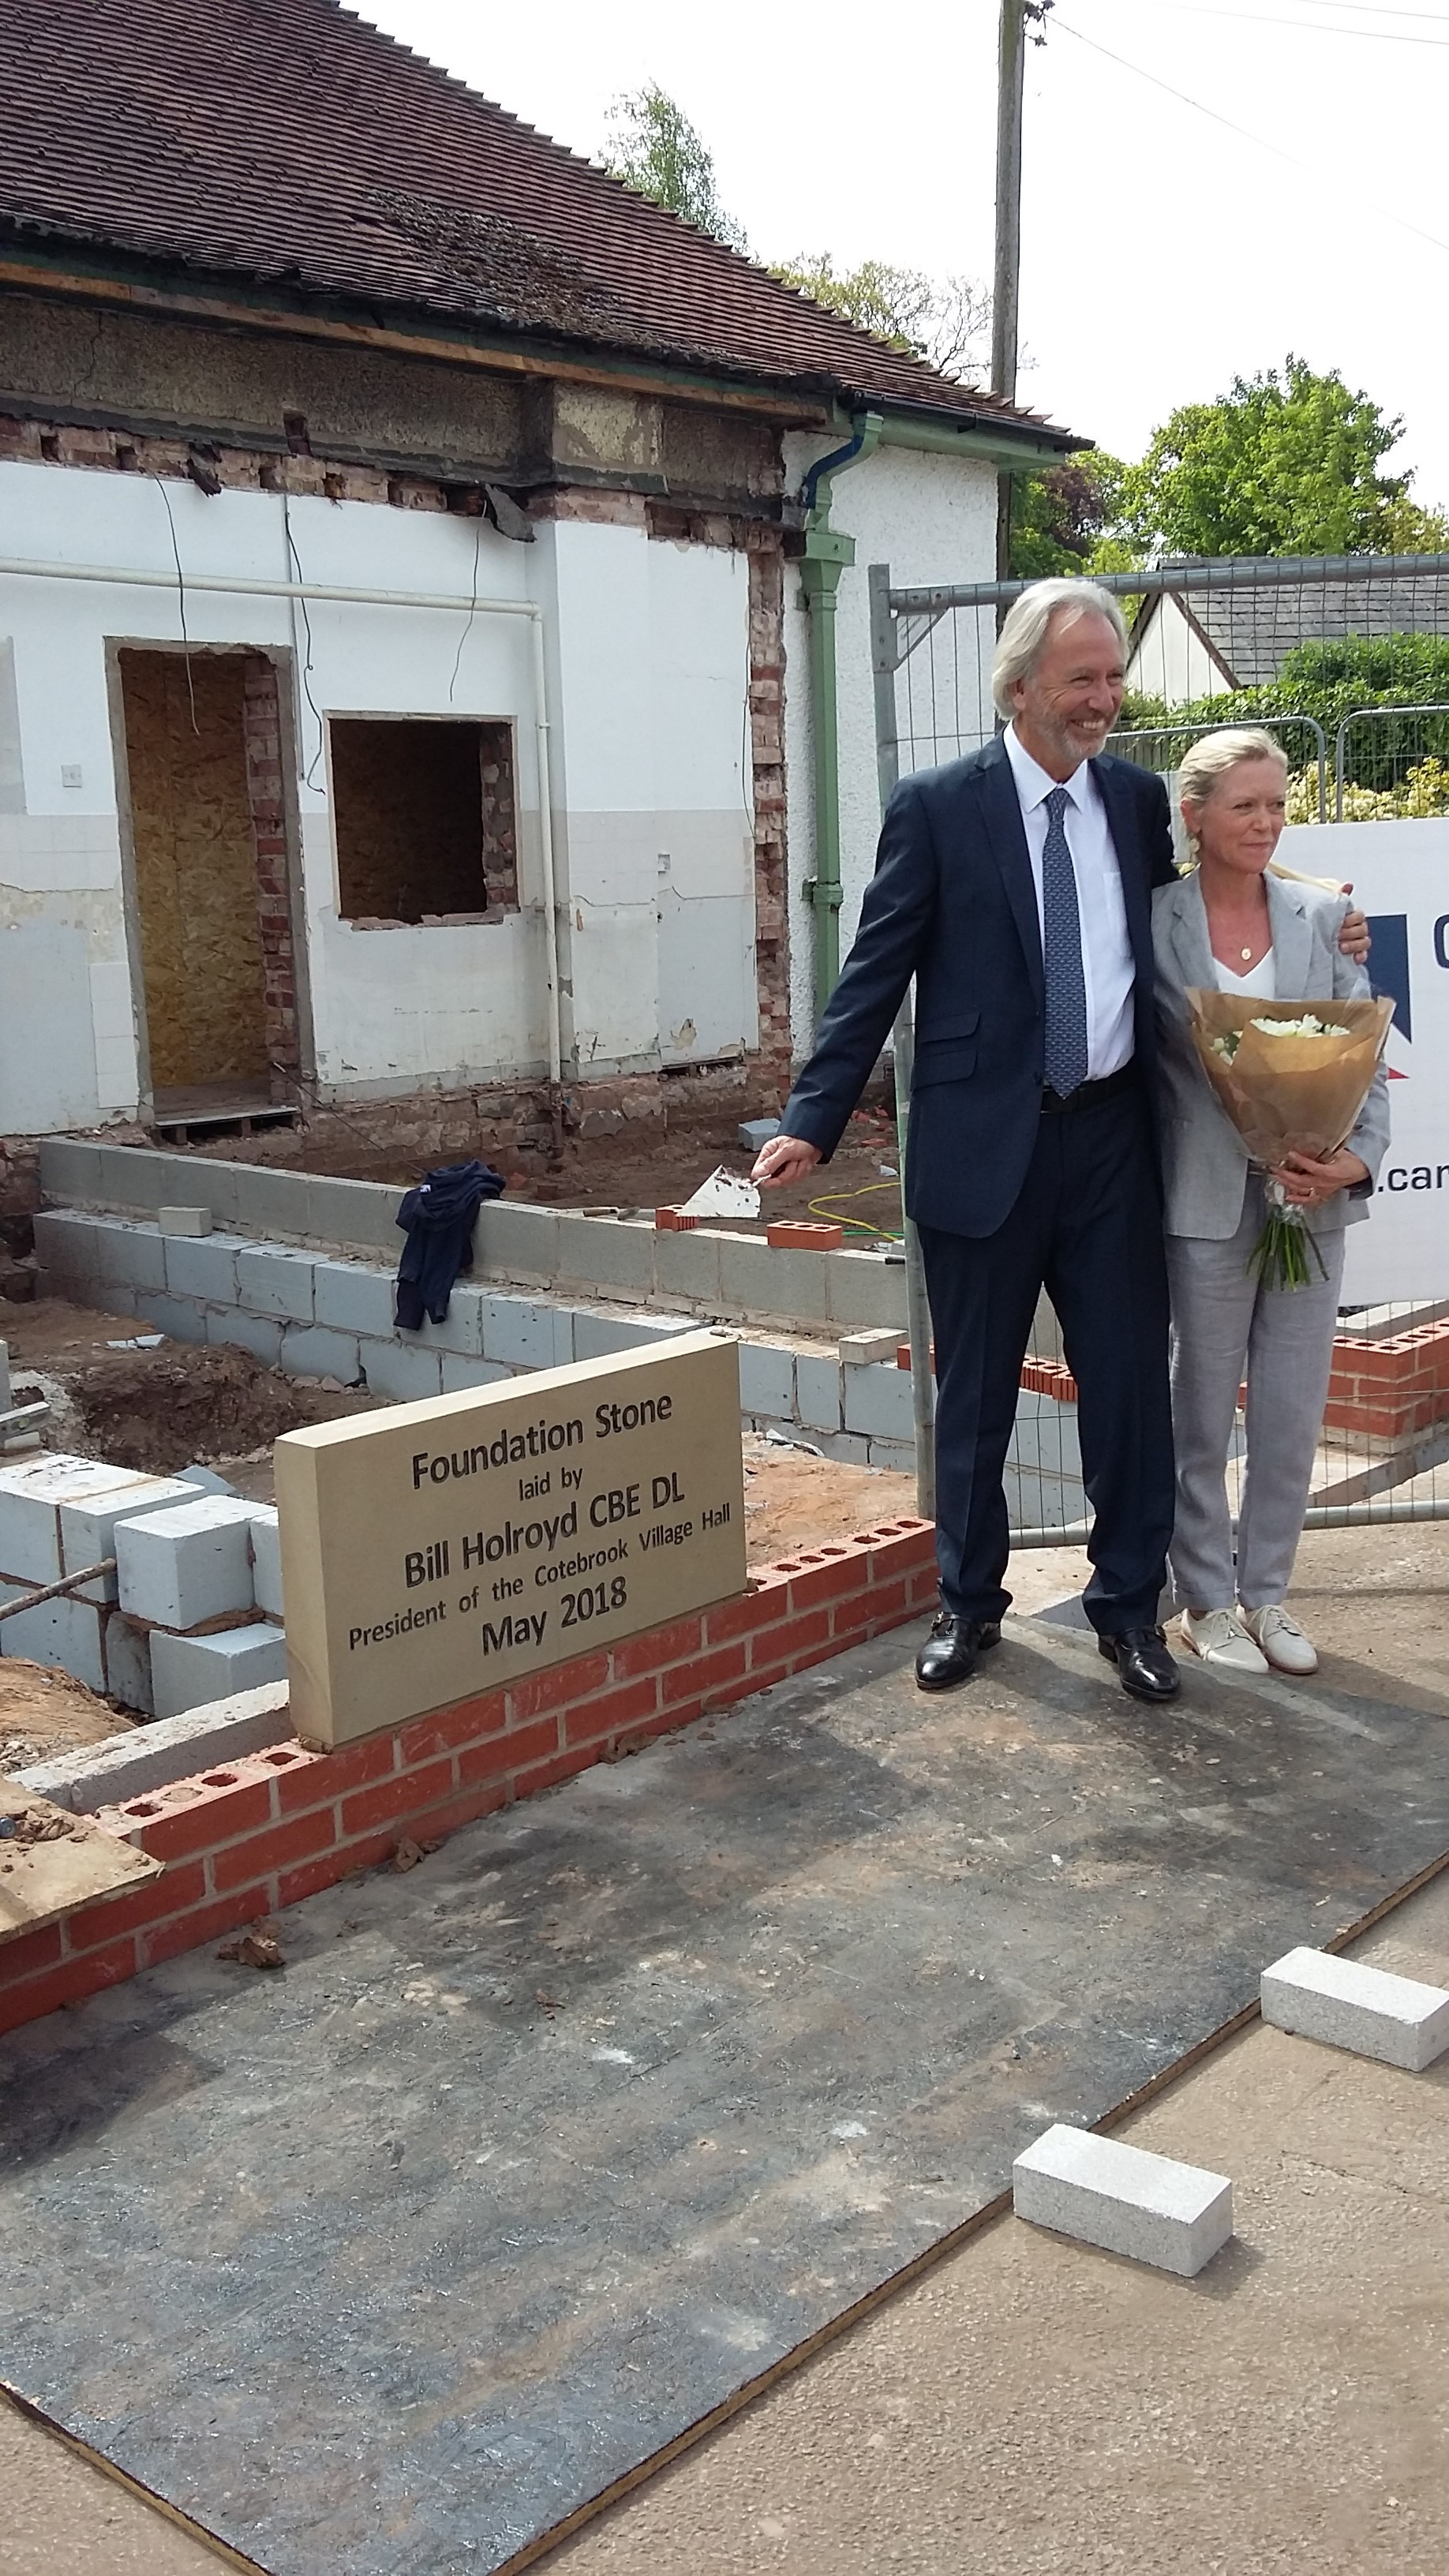 Bill Holroyd and his wife Julie lay the foundation stone at Cotebrook Village Hall